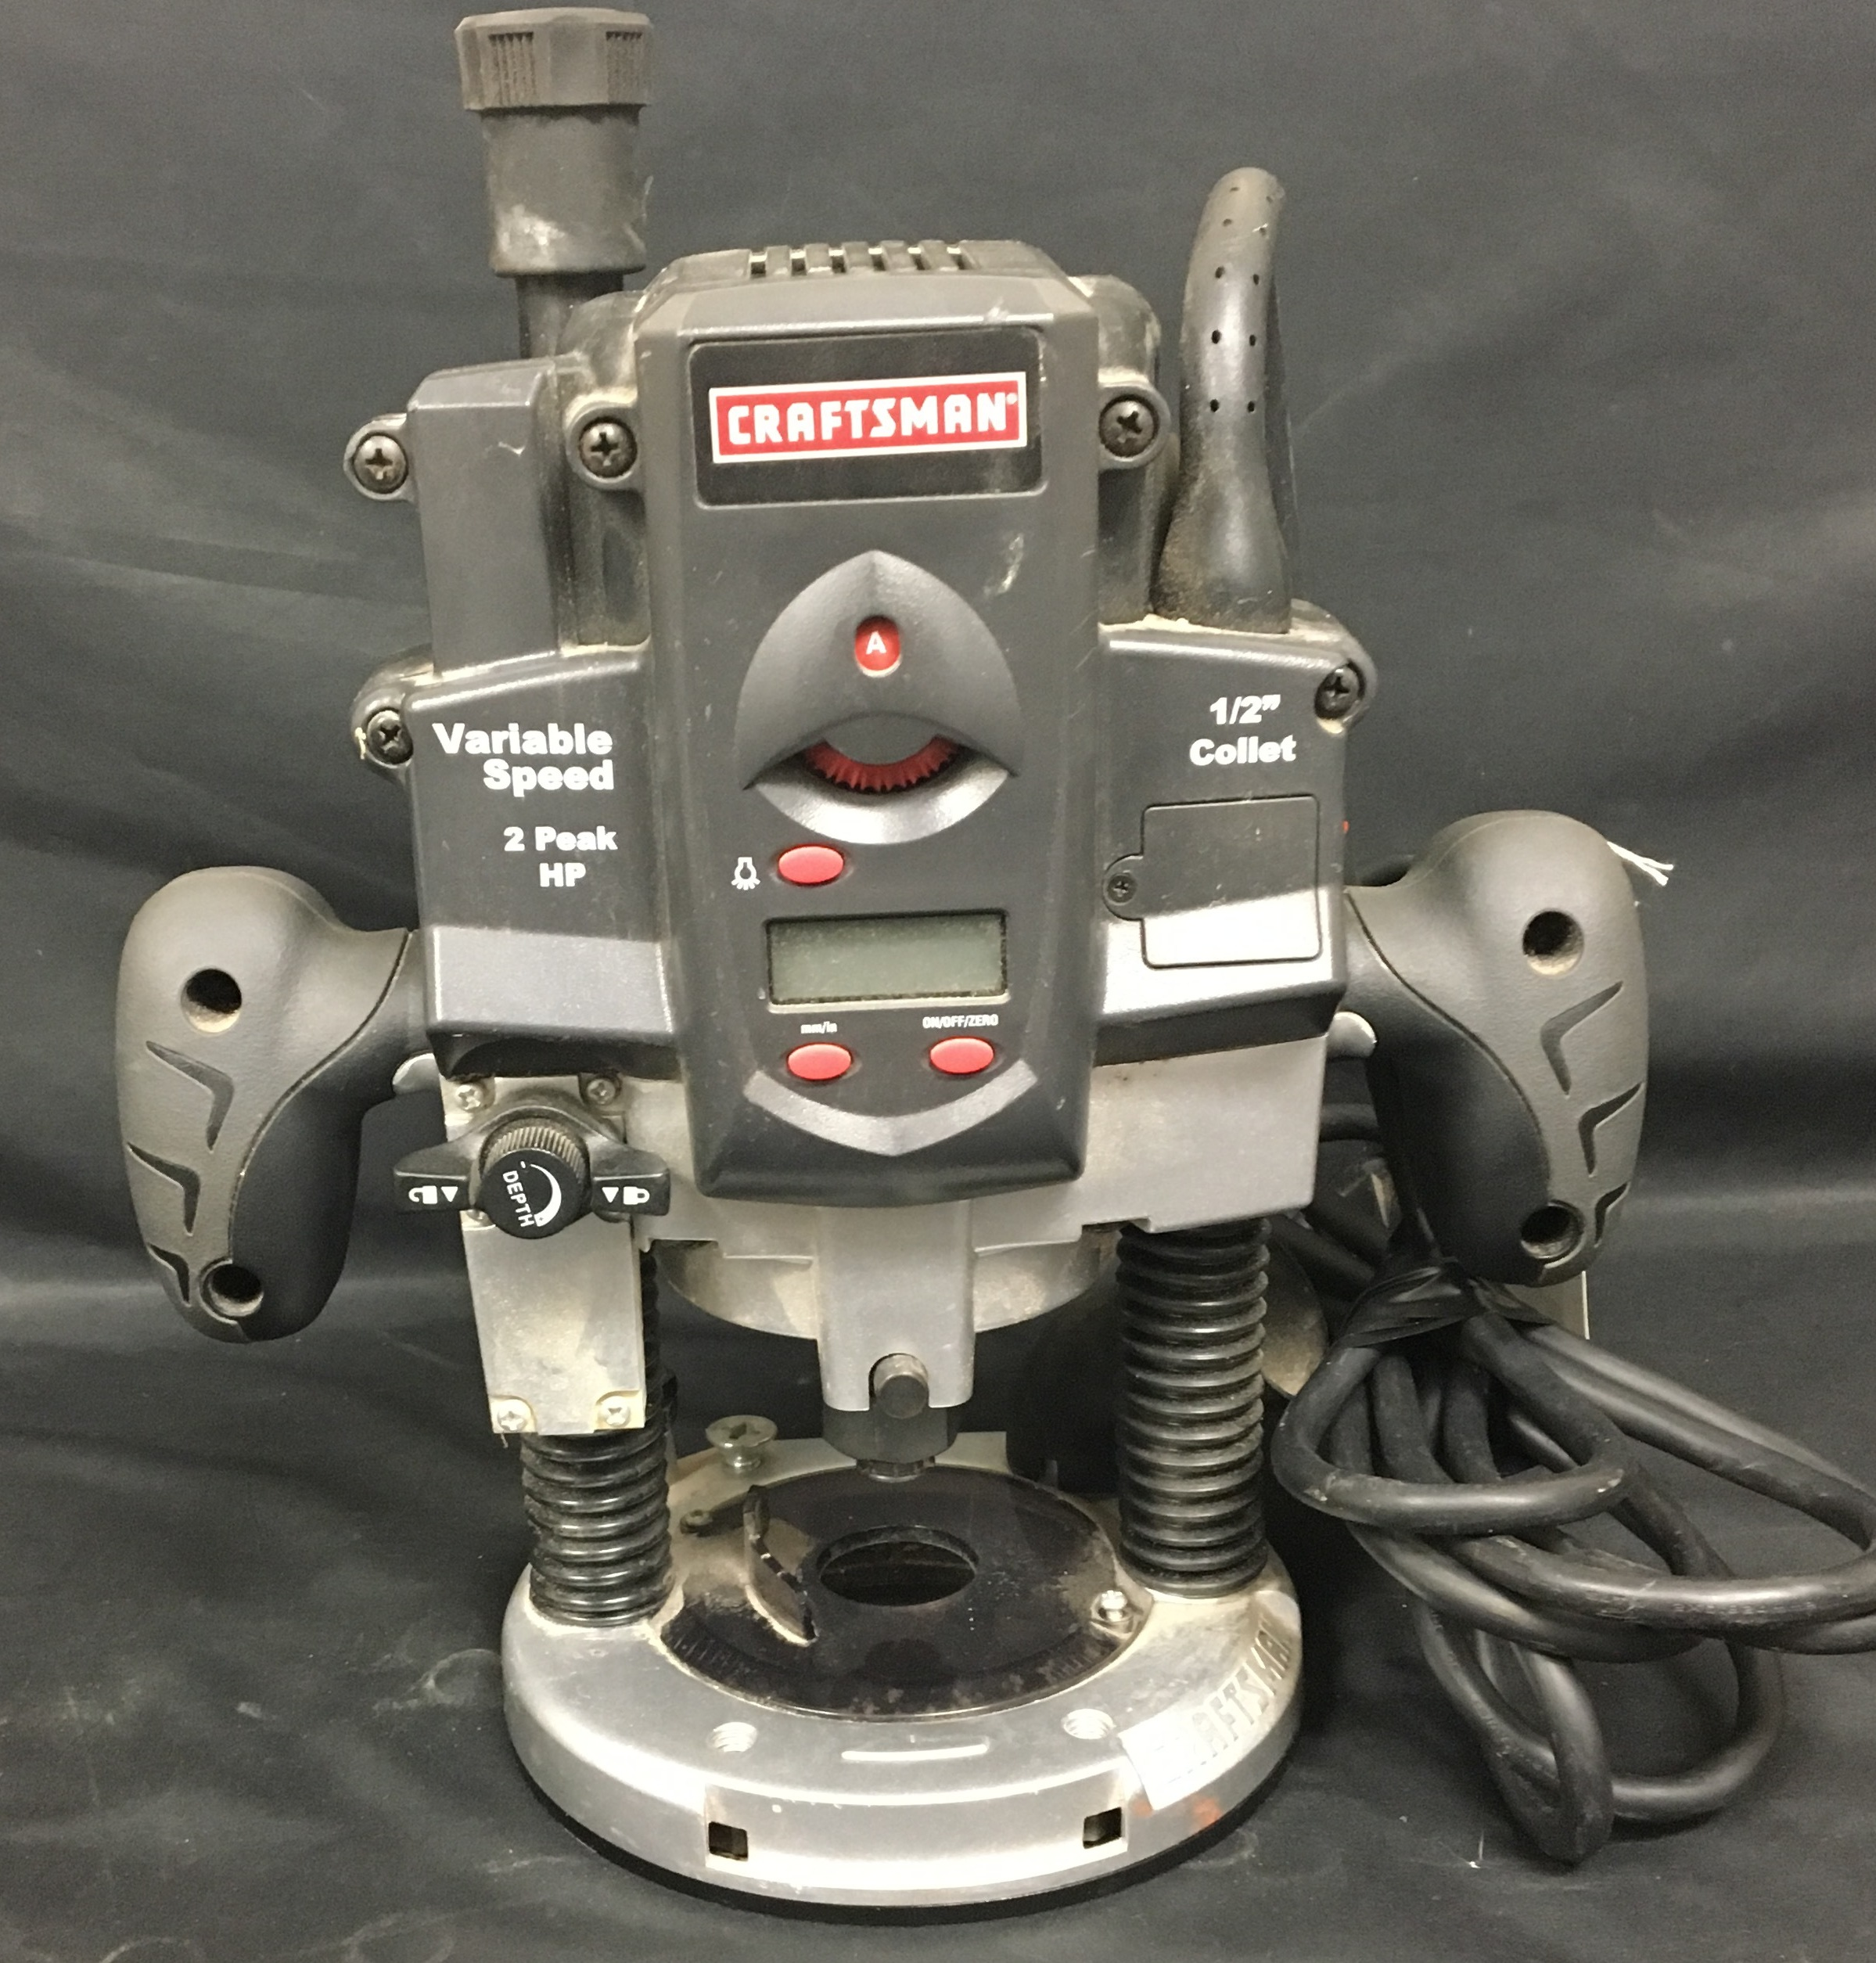 TOOLS: CRAFTSMAN ROUTER MODEL: 315.175170